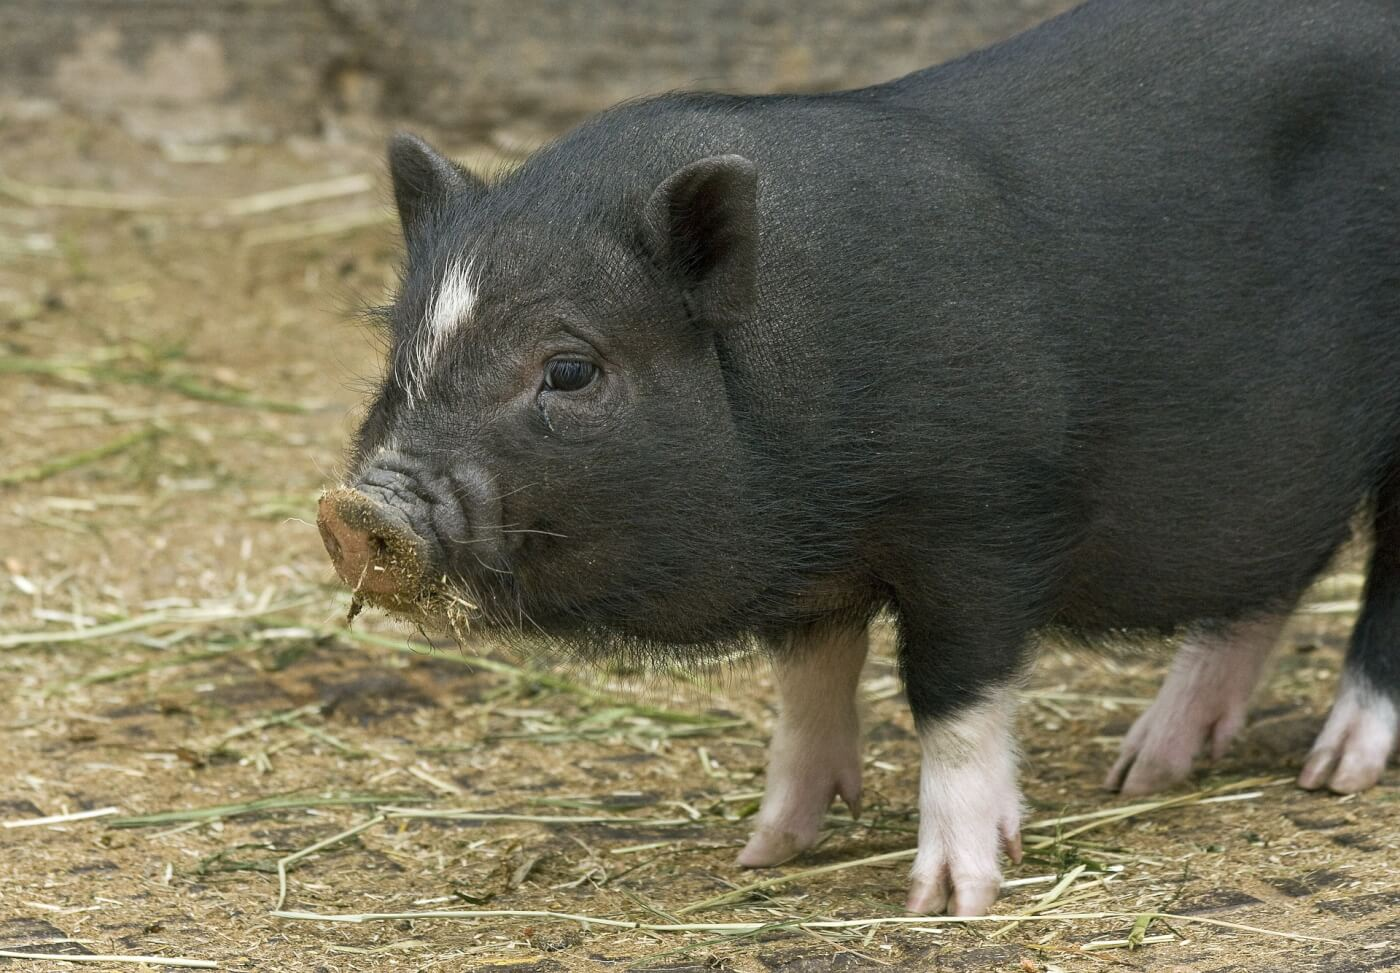 Why No One Should Buy a So-Called 'Teacup' Pig | PETA